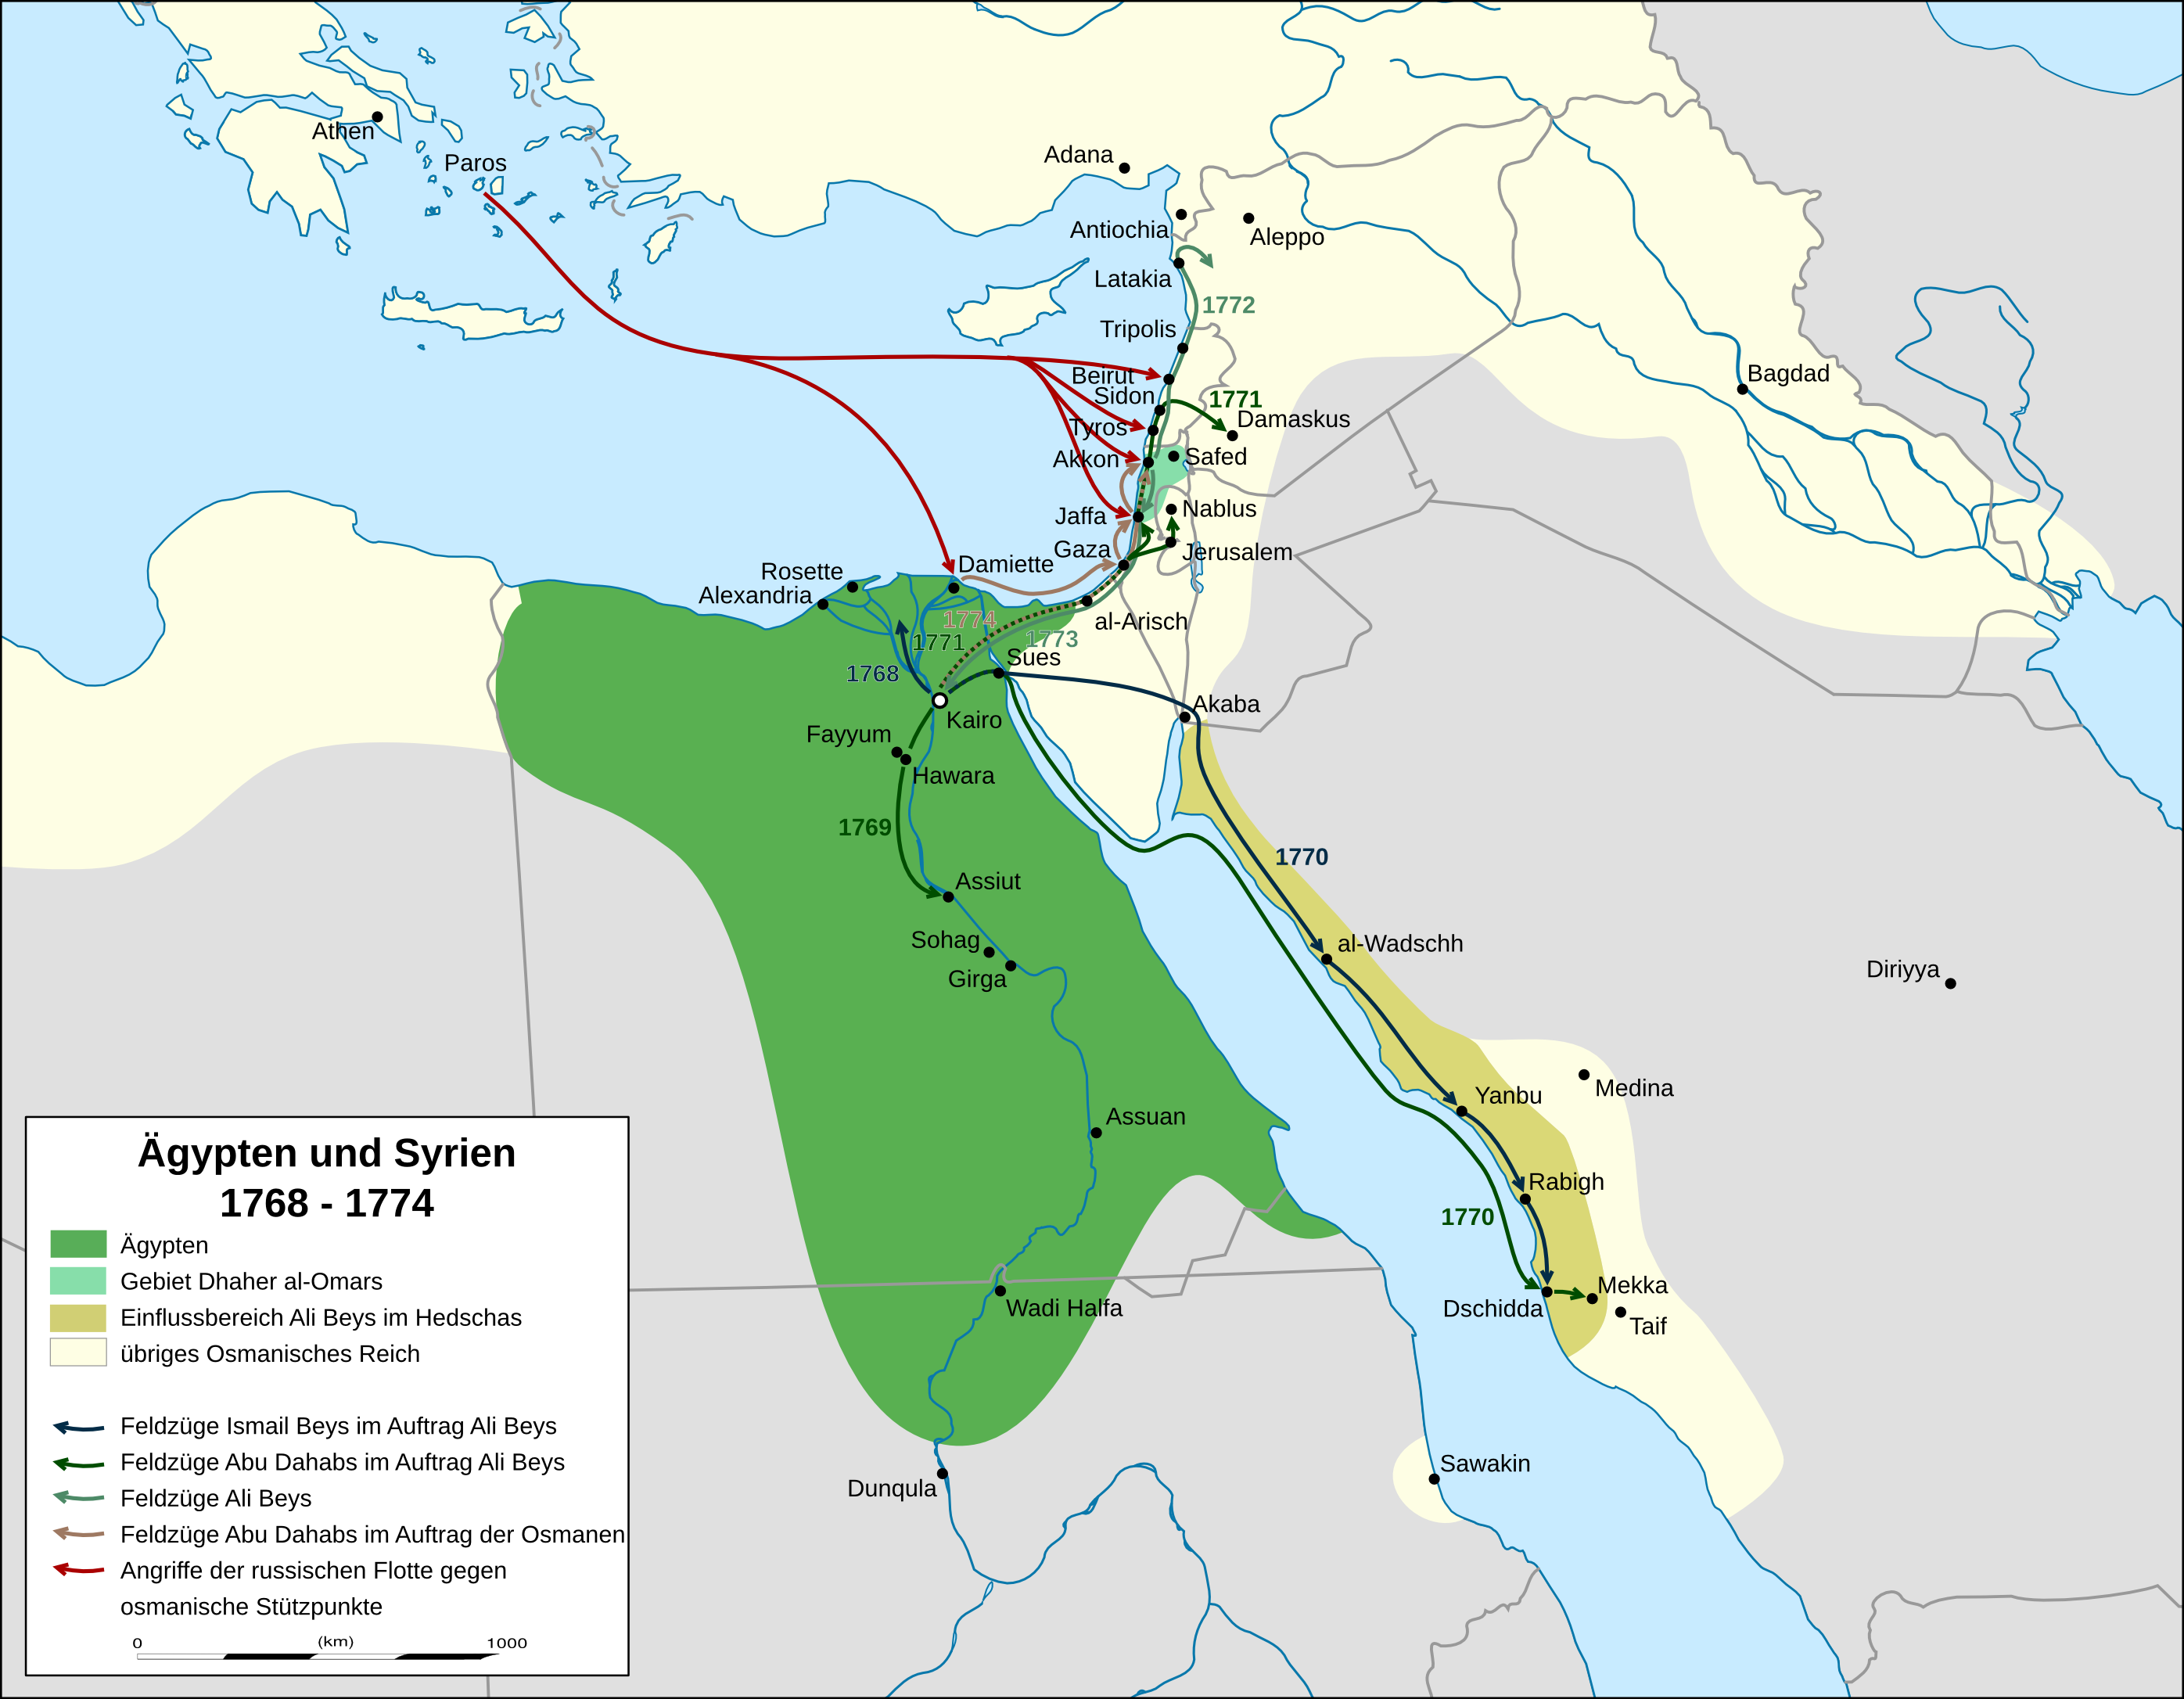 FileEgypt And Syria To Map Depng Wikimedia Commons - Map of egypt and syria